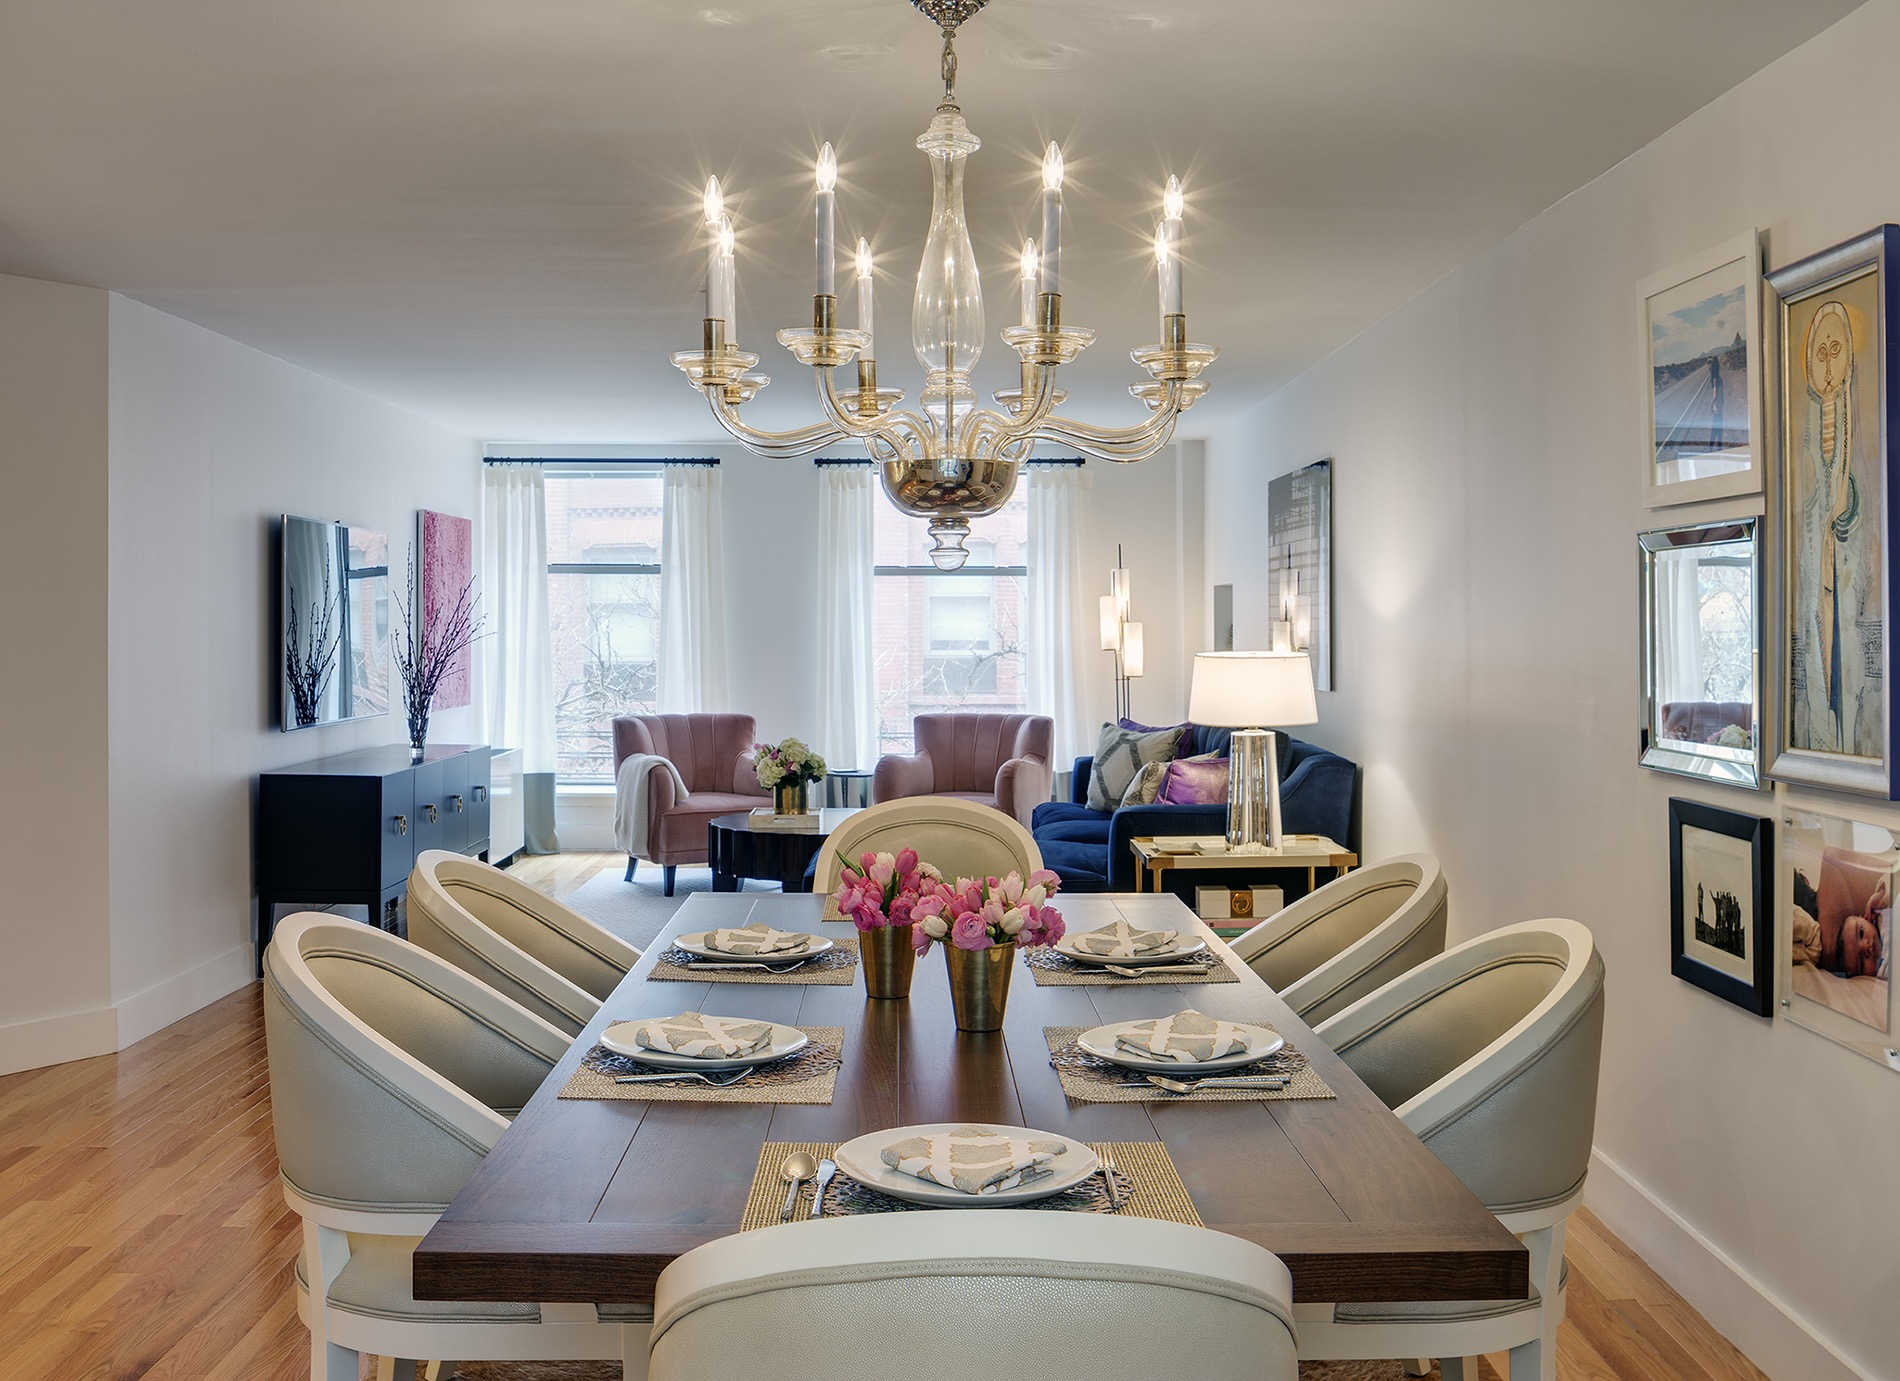 Living And Dining Room Combination Manifests Stylish Comfort (Image 21 of 34)